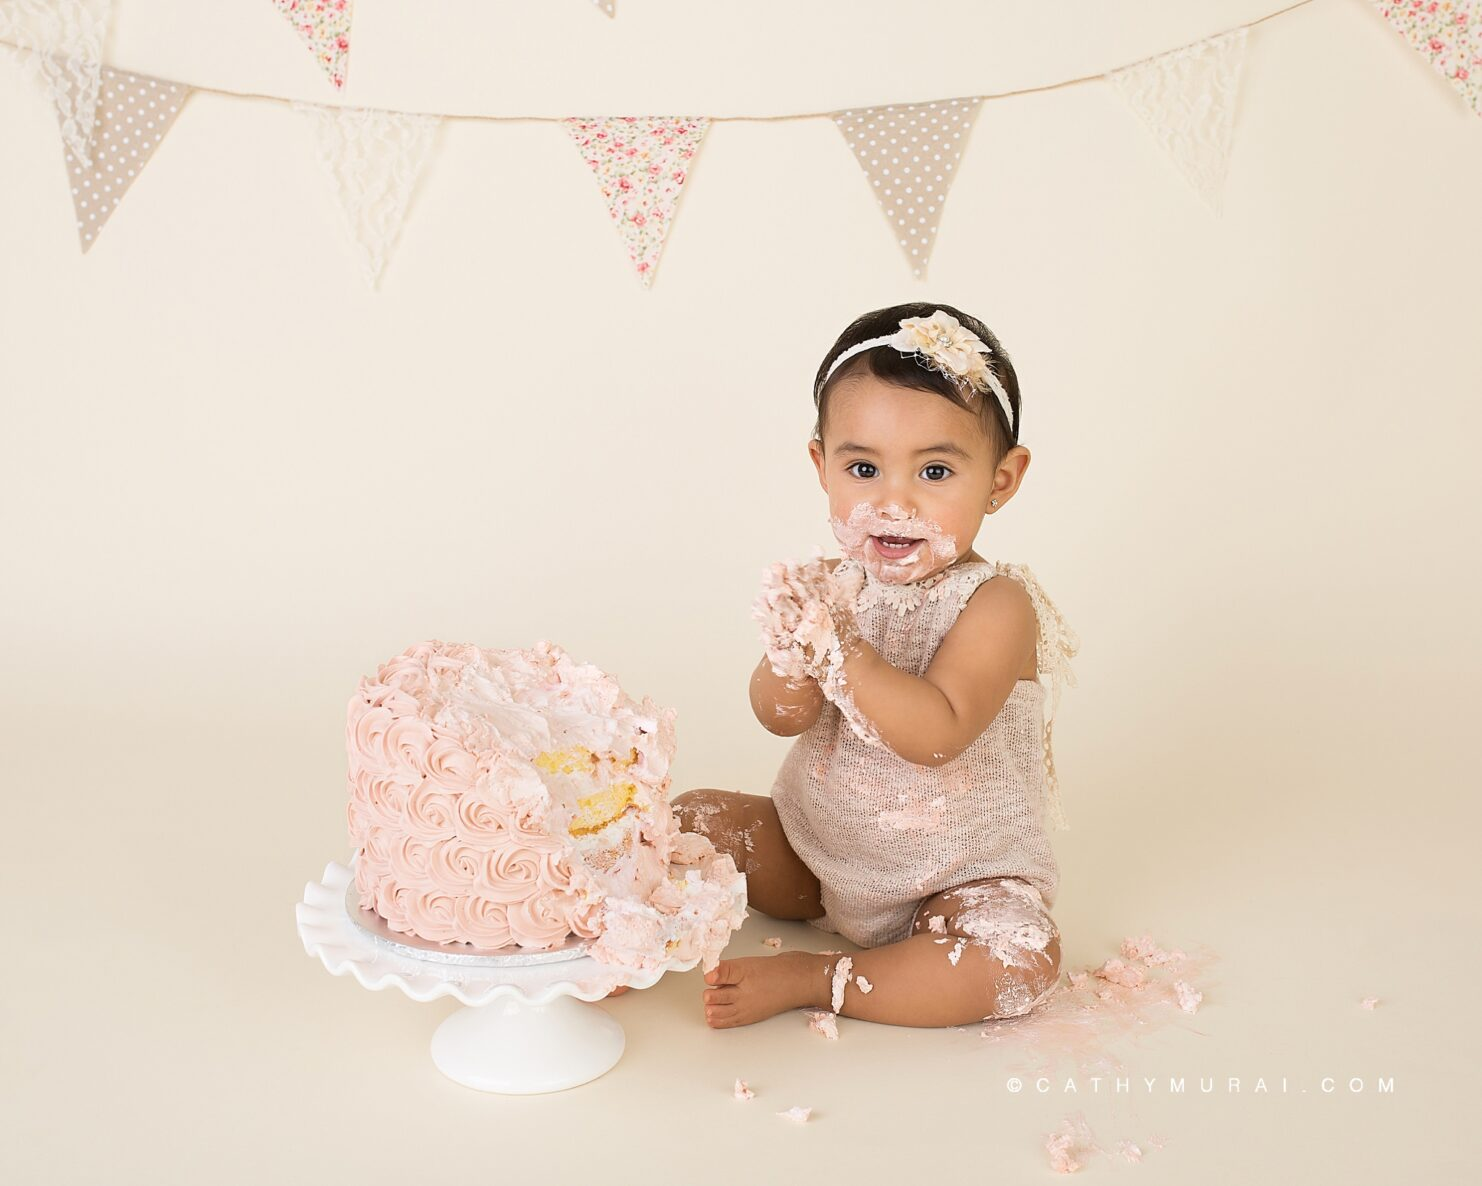 Getting messy during First Birthday Cake Smash Photography session with a vintage style using a pink cake, white cake stand, and a vintage banner, captured by Cathy Murai Photography, a Irvine baby photographer